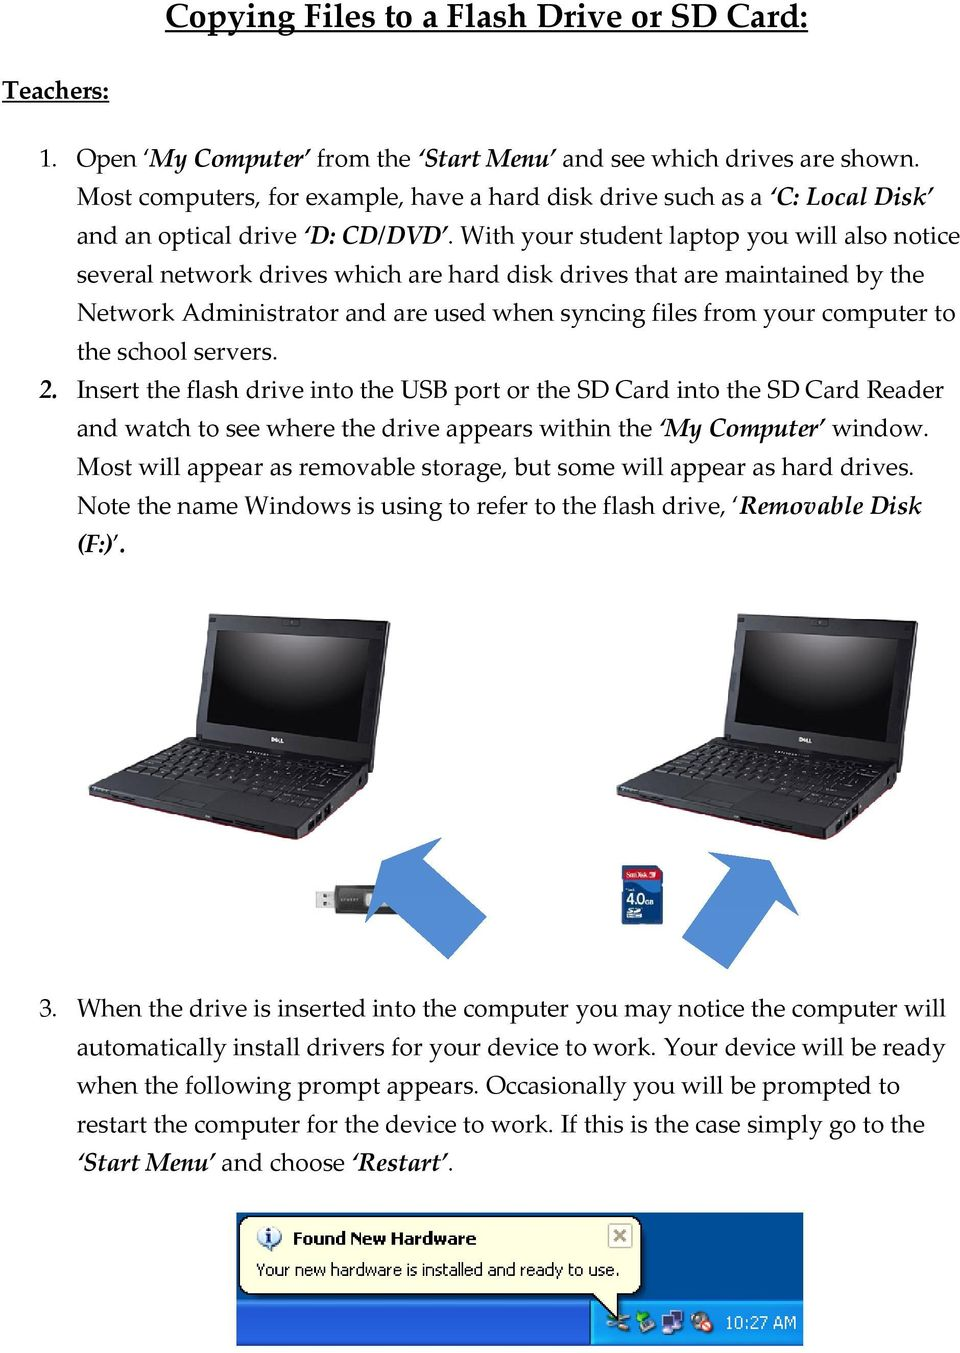 With your student laptop you will also notice several network drives which are hard disk drives that are maintained by the Network Administrator and are used when syncing files from your computer to